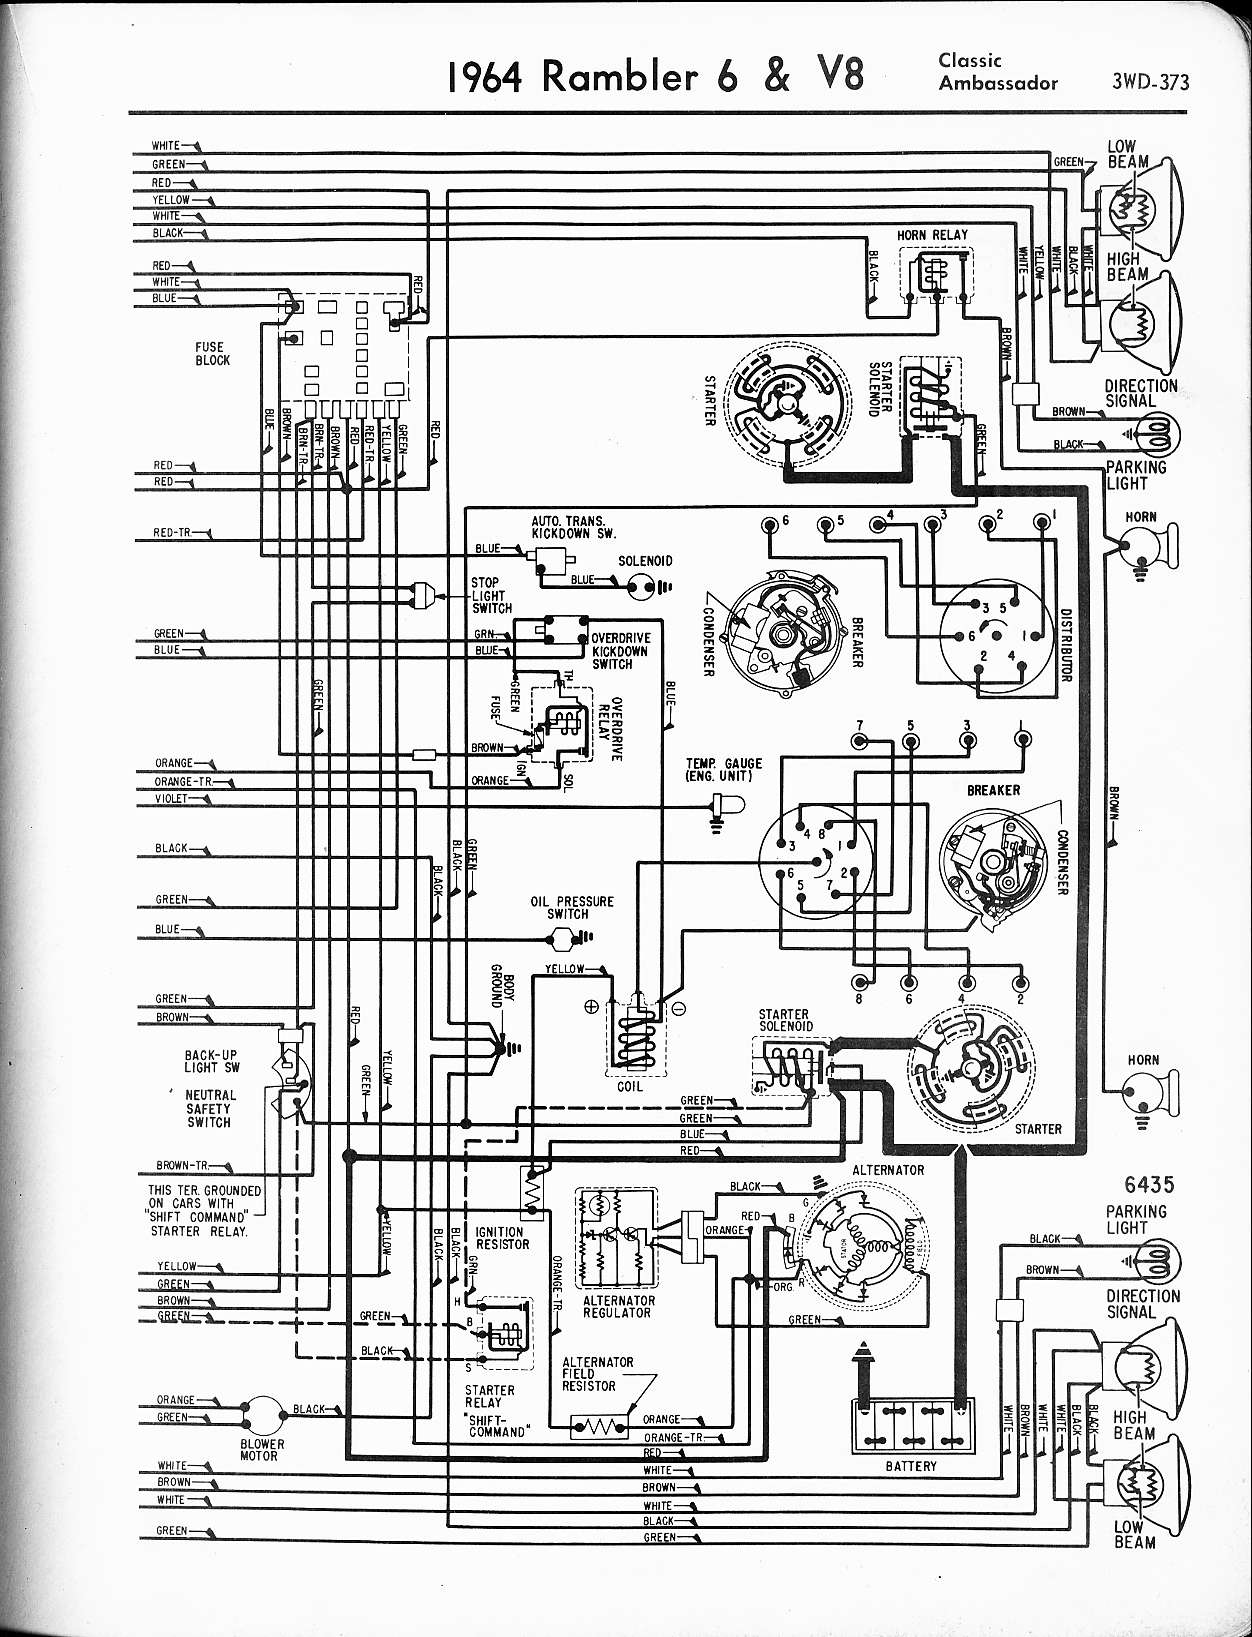 1960 Rambler American Wiring Diagrams Schematic Diagram For Edsel V8 All Models 64 Residential Electrical Symbols U2022 Classic Station Wagon